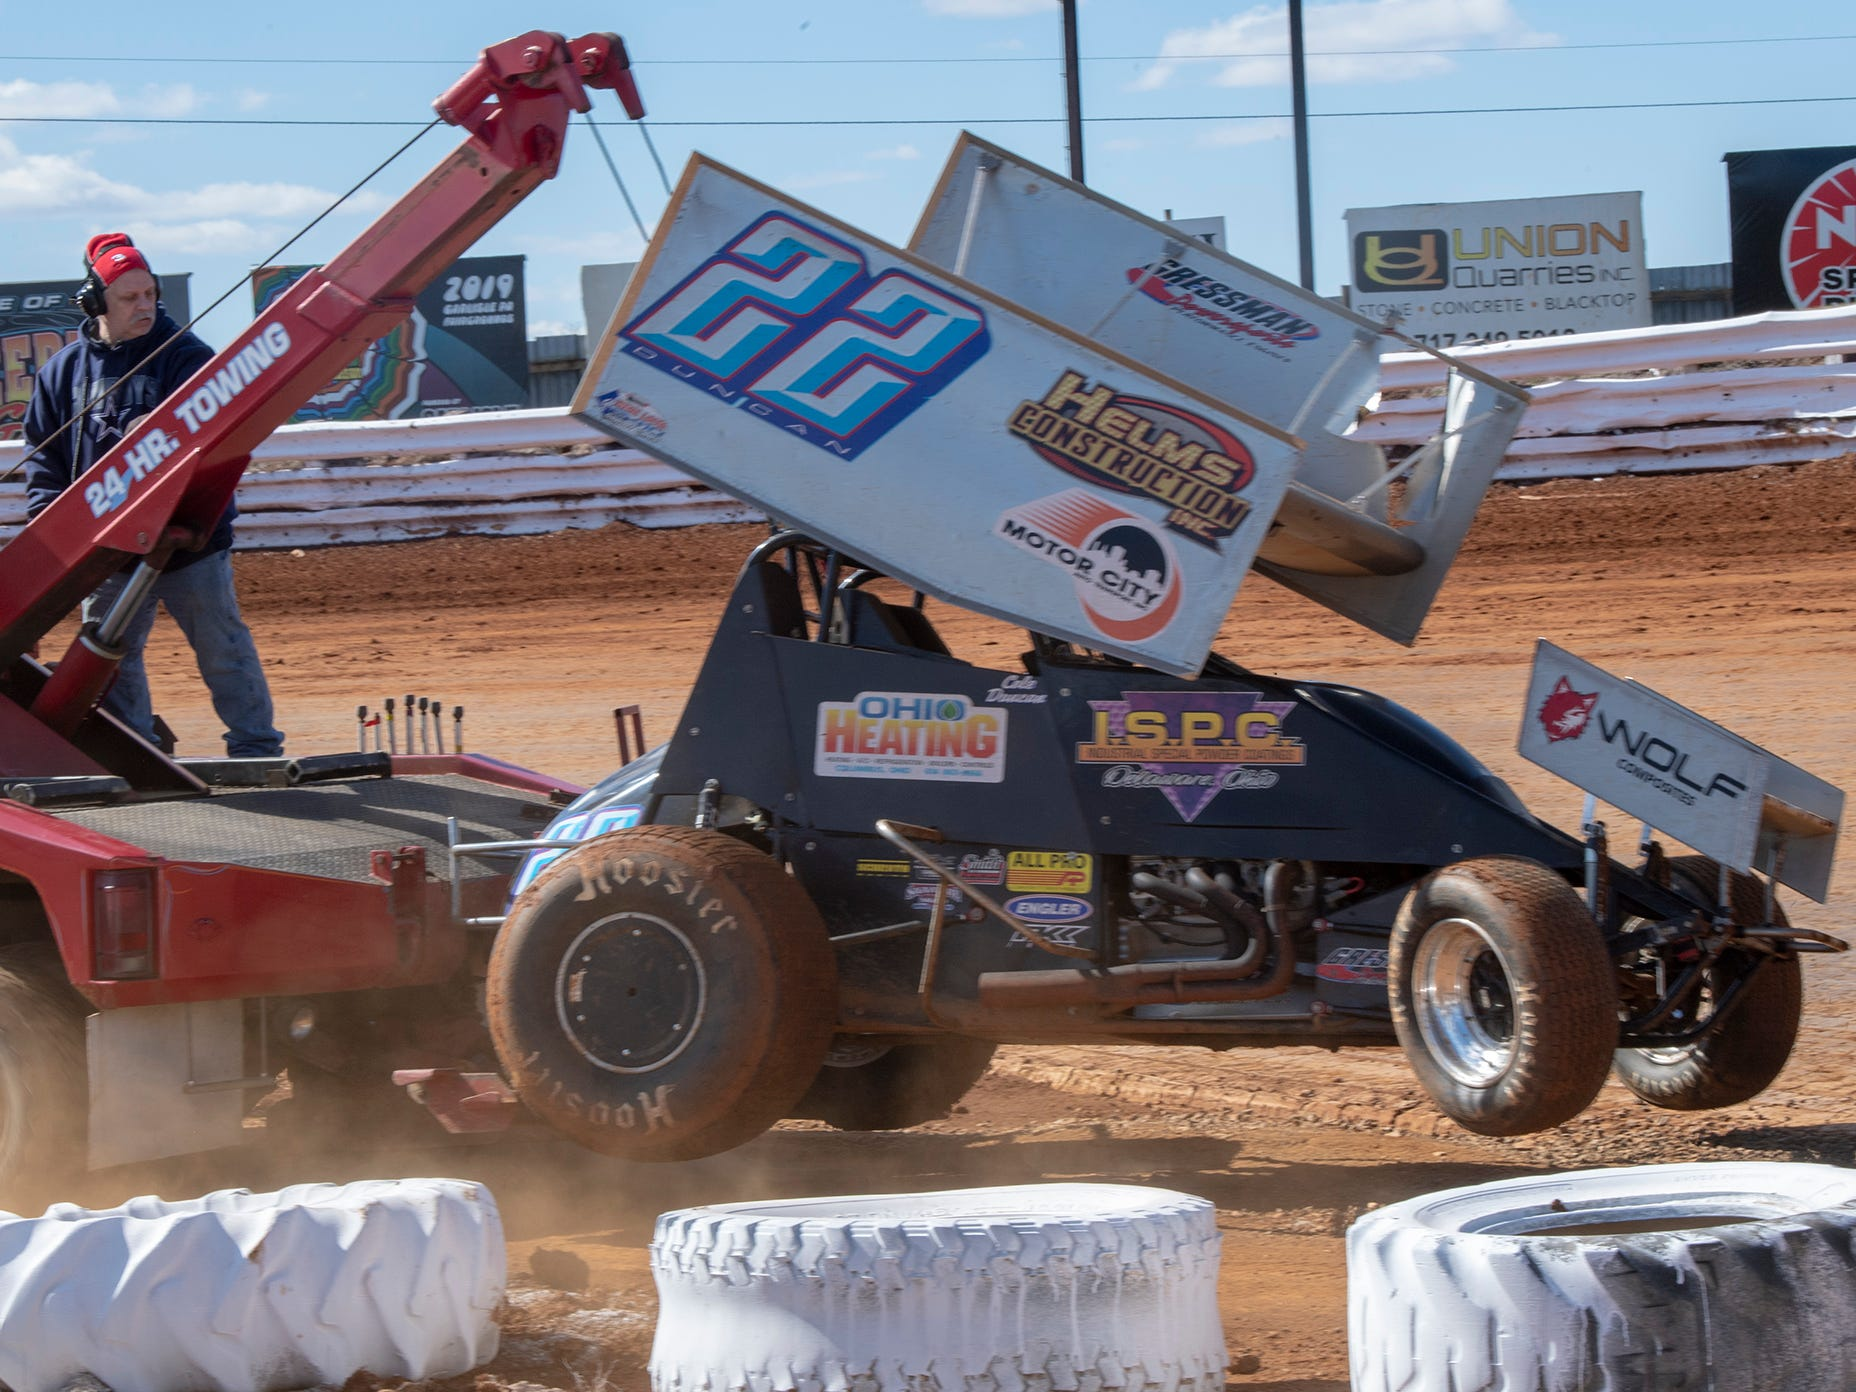 The #22 car driven by Cole Duncan is towed from the track during the Williams Grove season opener for 410 sprints Sunday March 17, 2019.